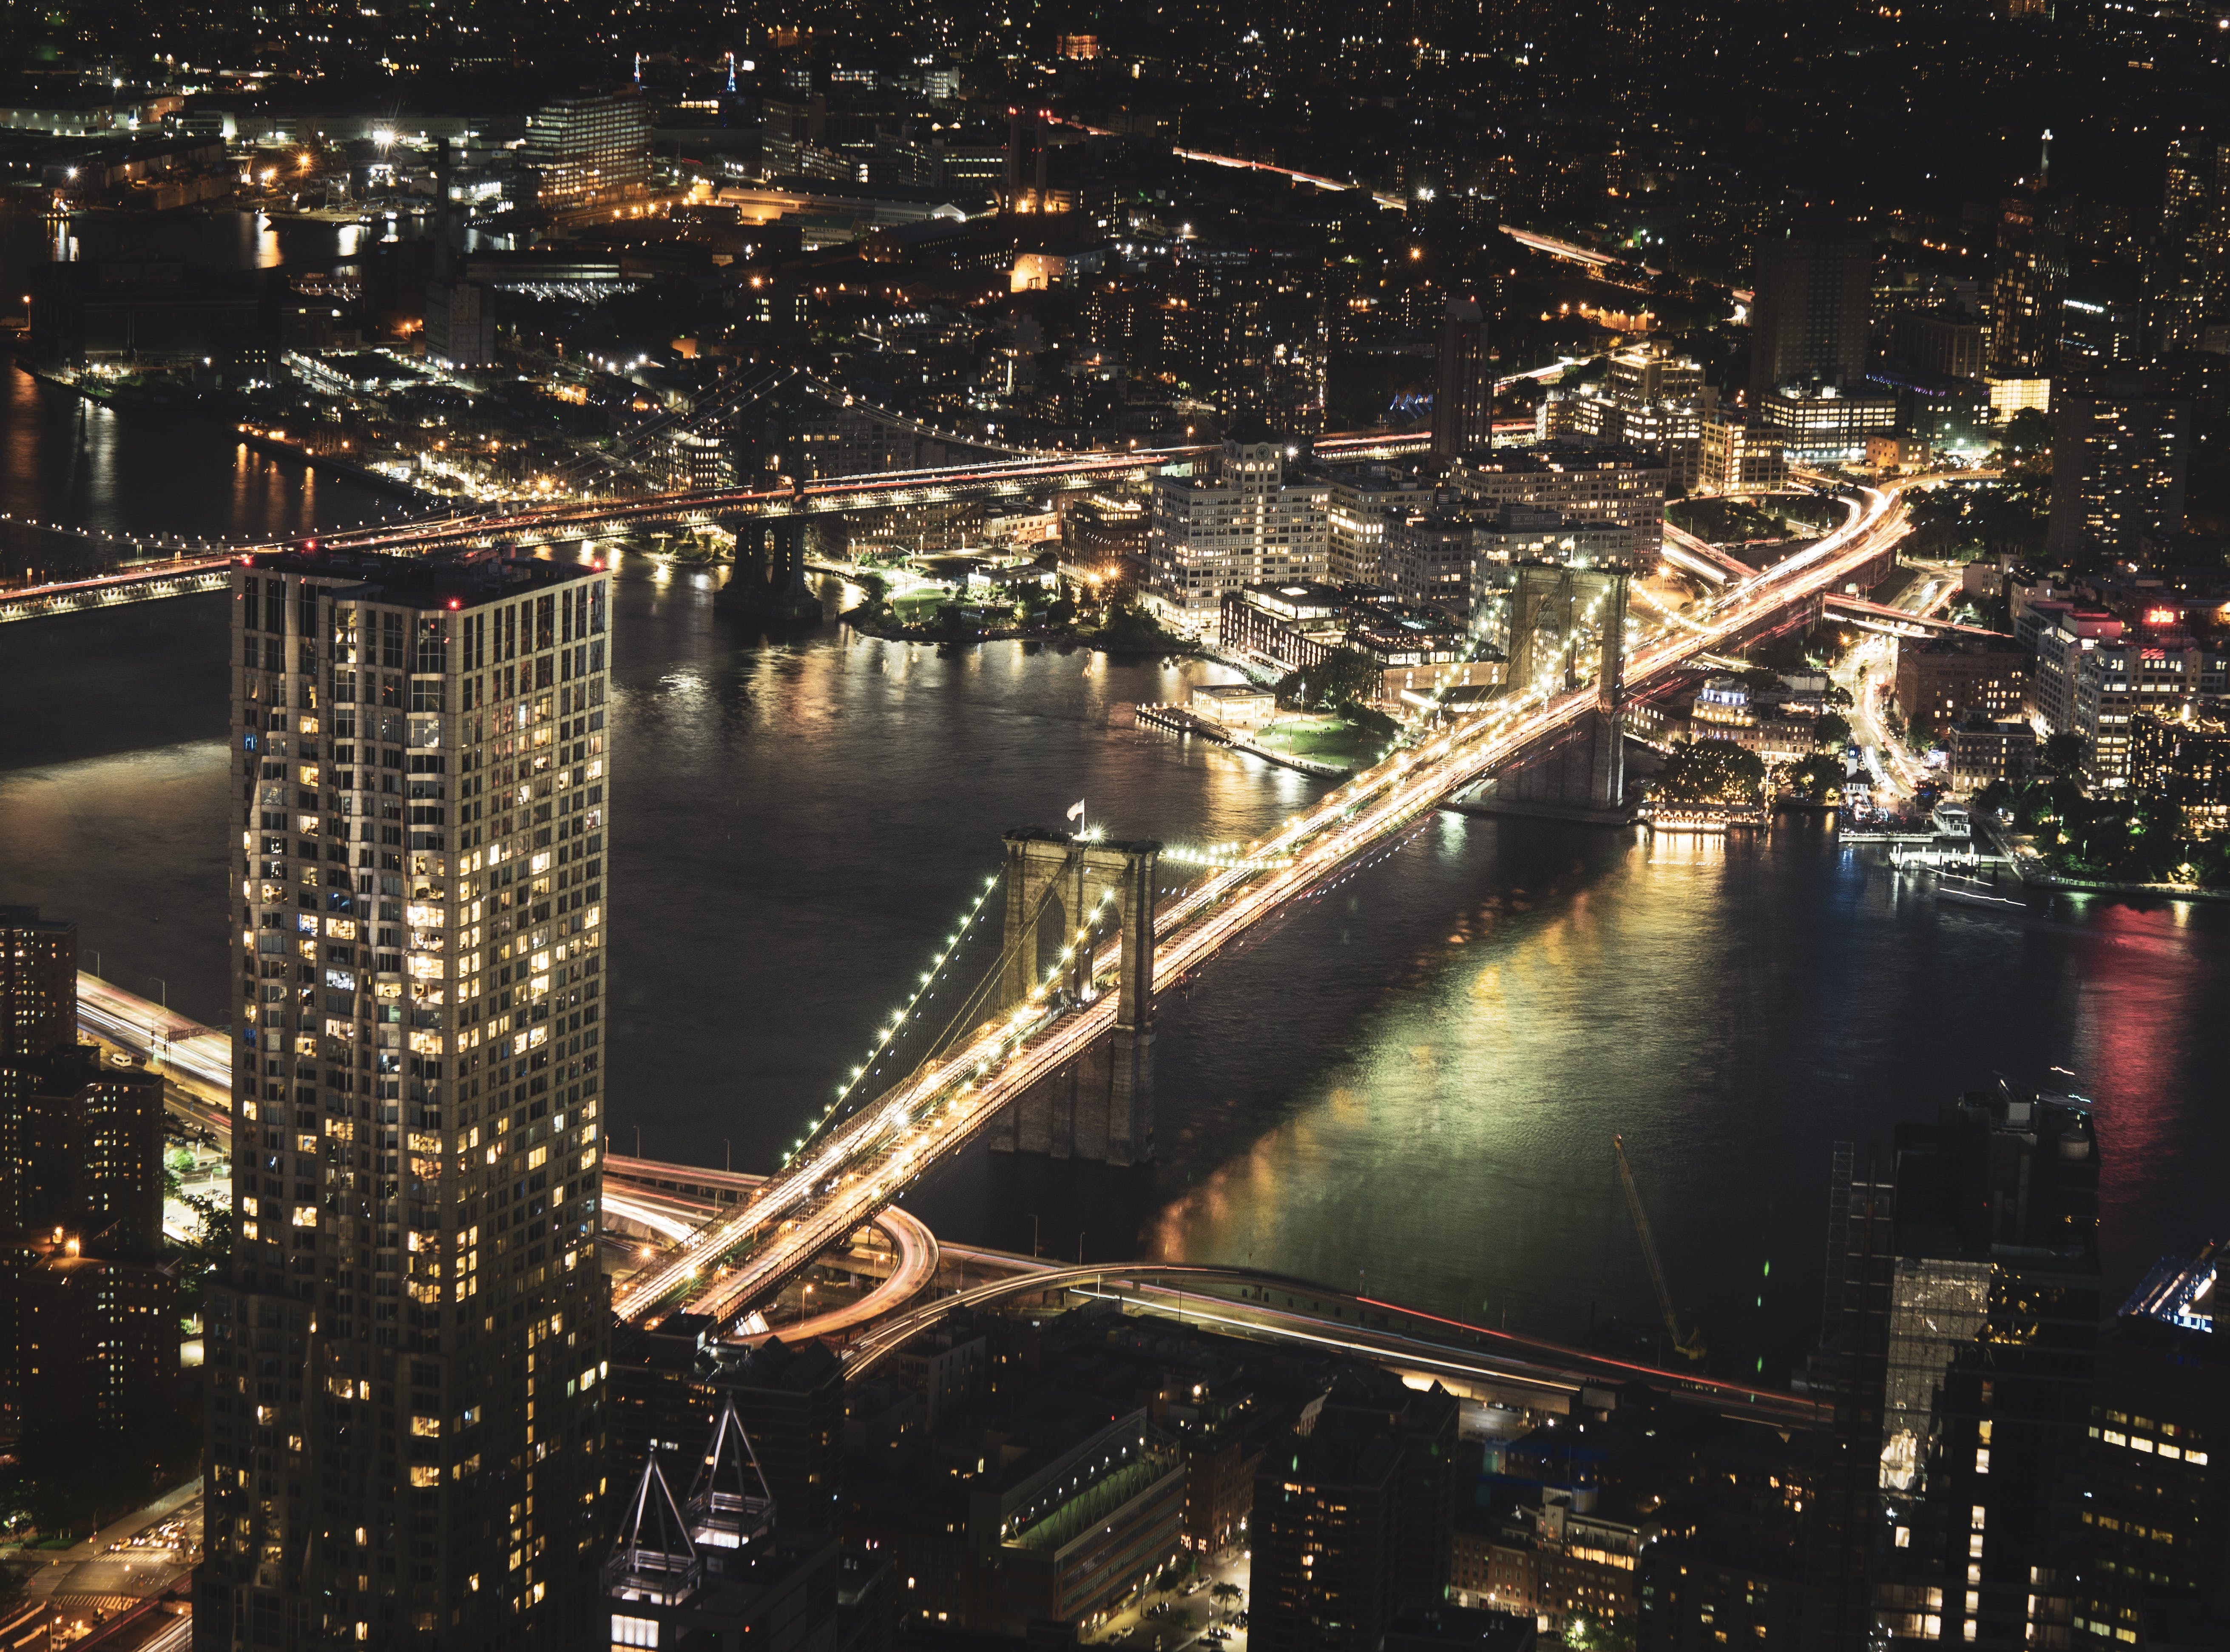 Aerial Photography of High Rise Buildings at Night Time